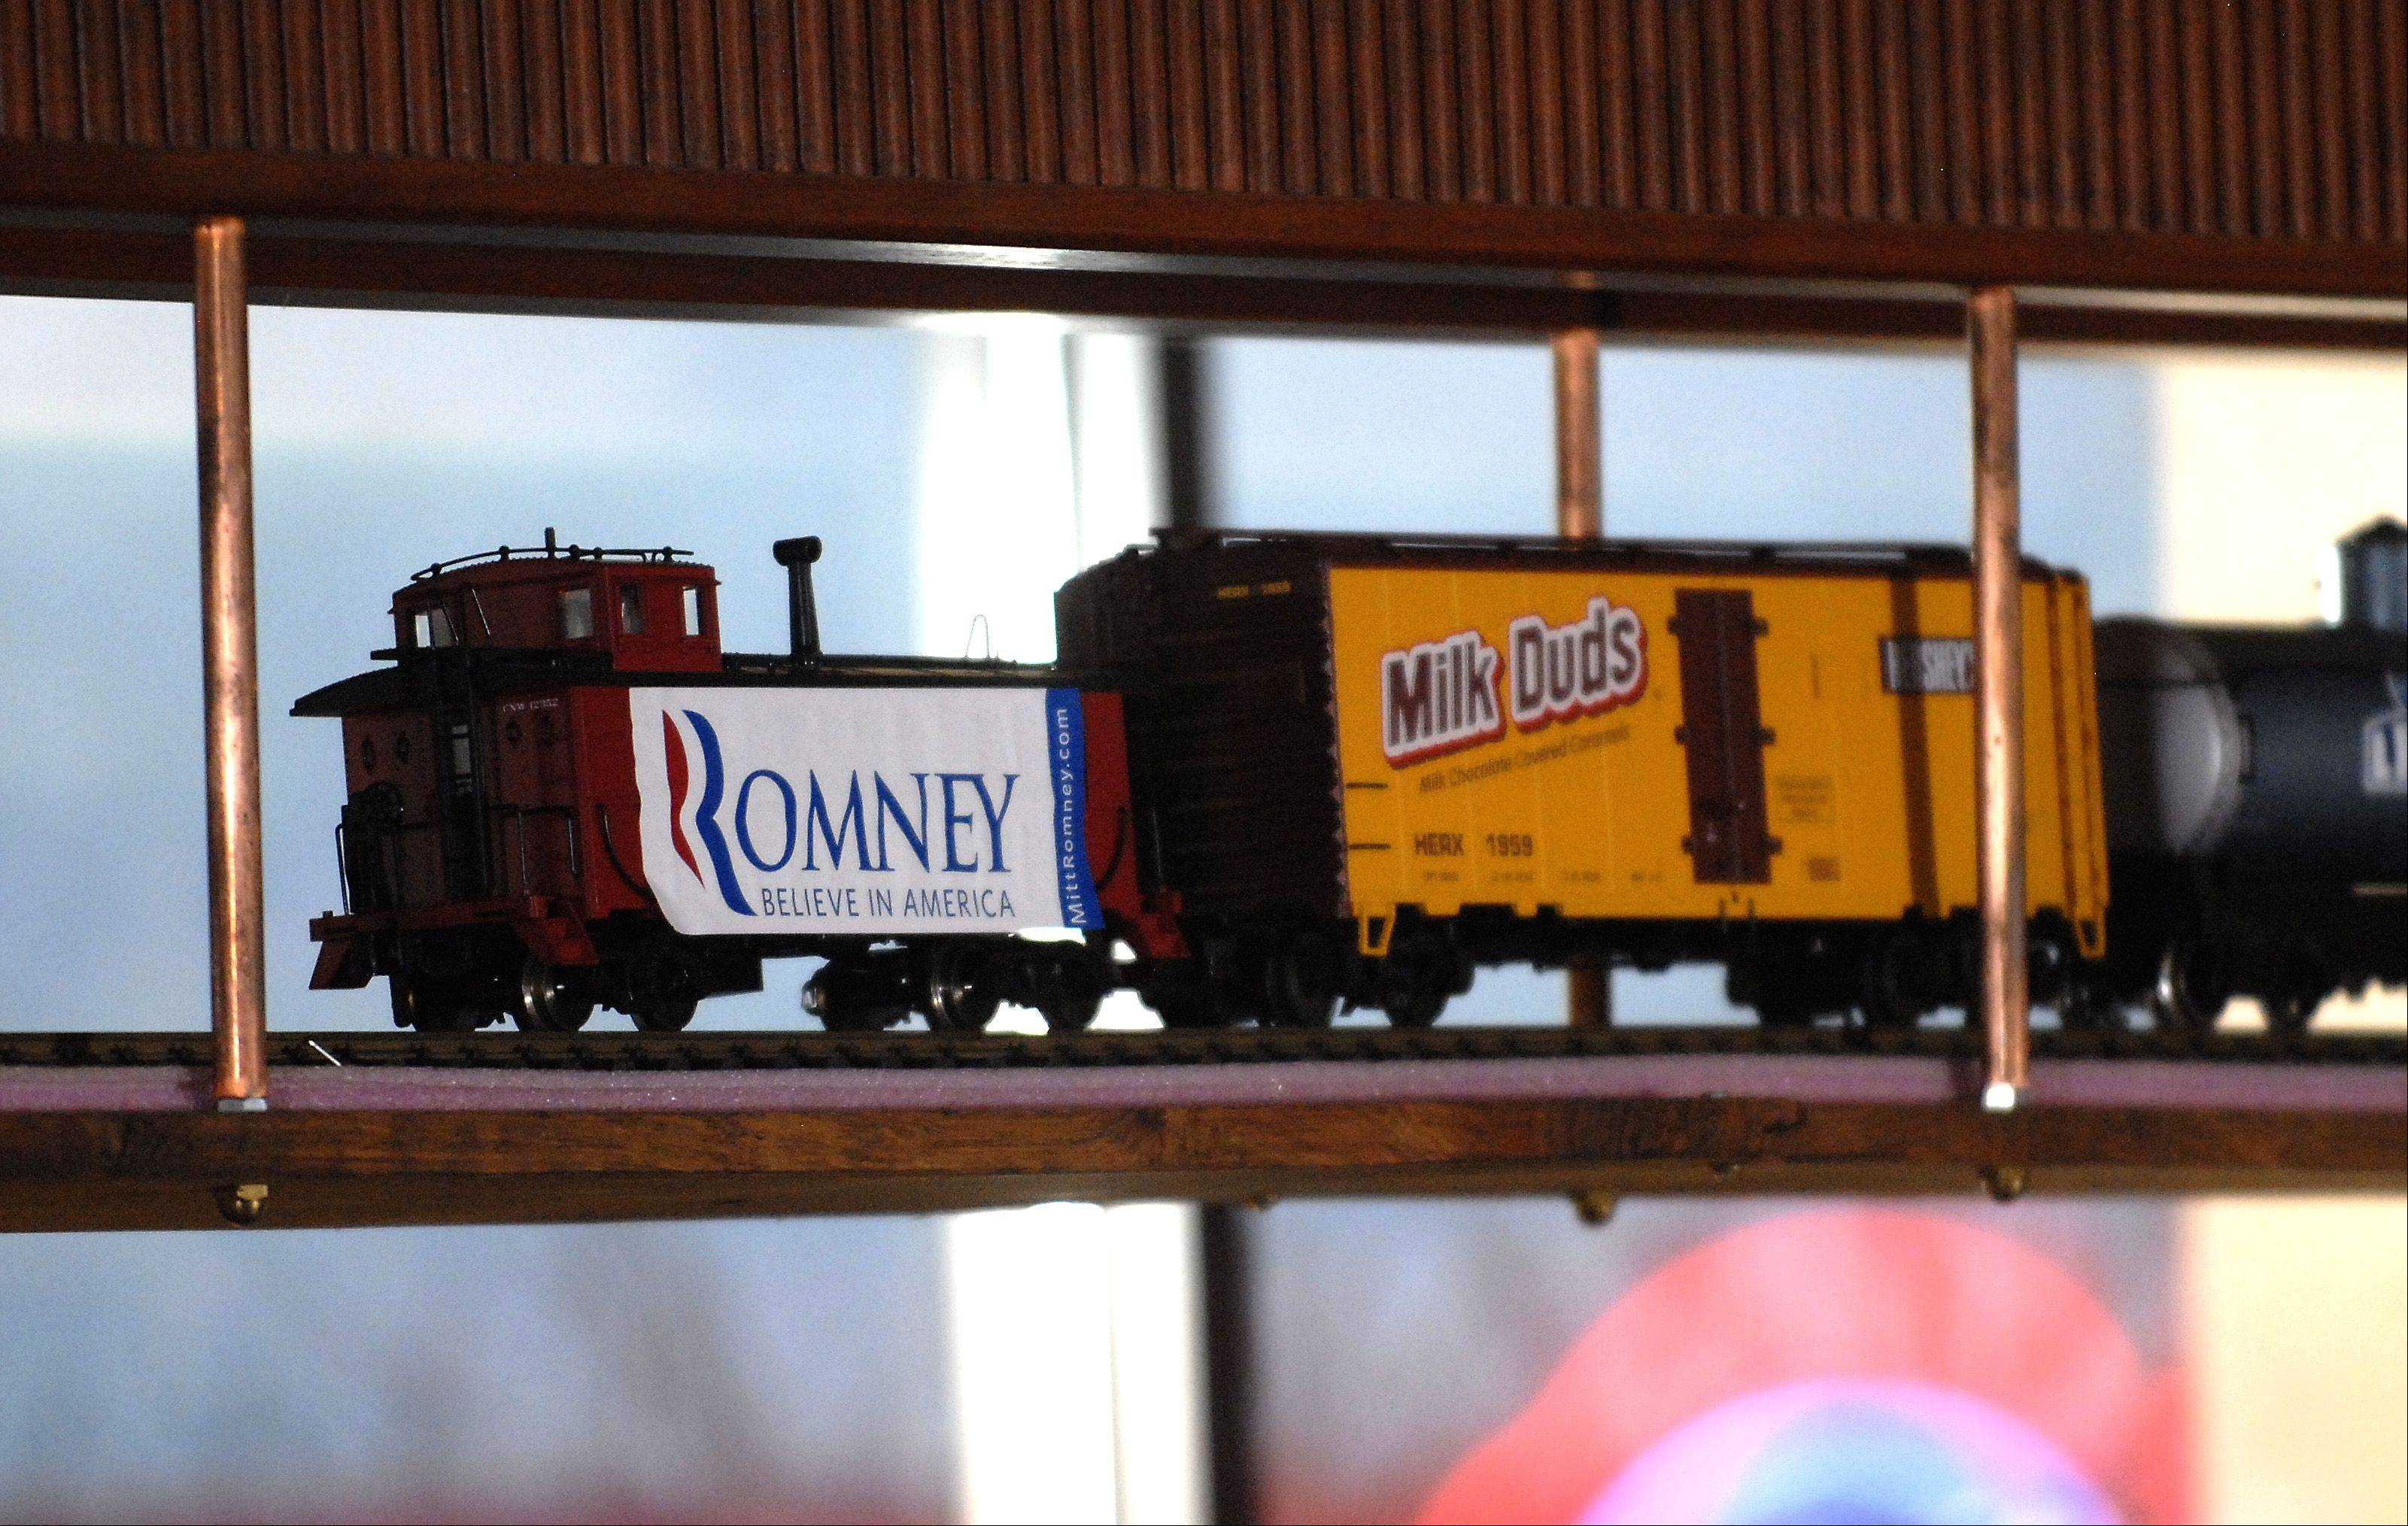 A train that circles the dining room in Pancakes Eggcetera bears a Mitt Romney sign Friday morning in Rosemont.